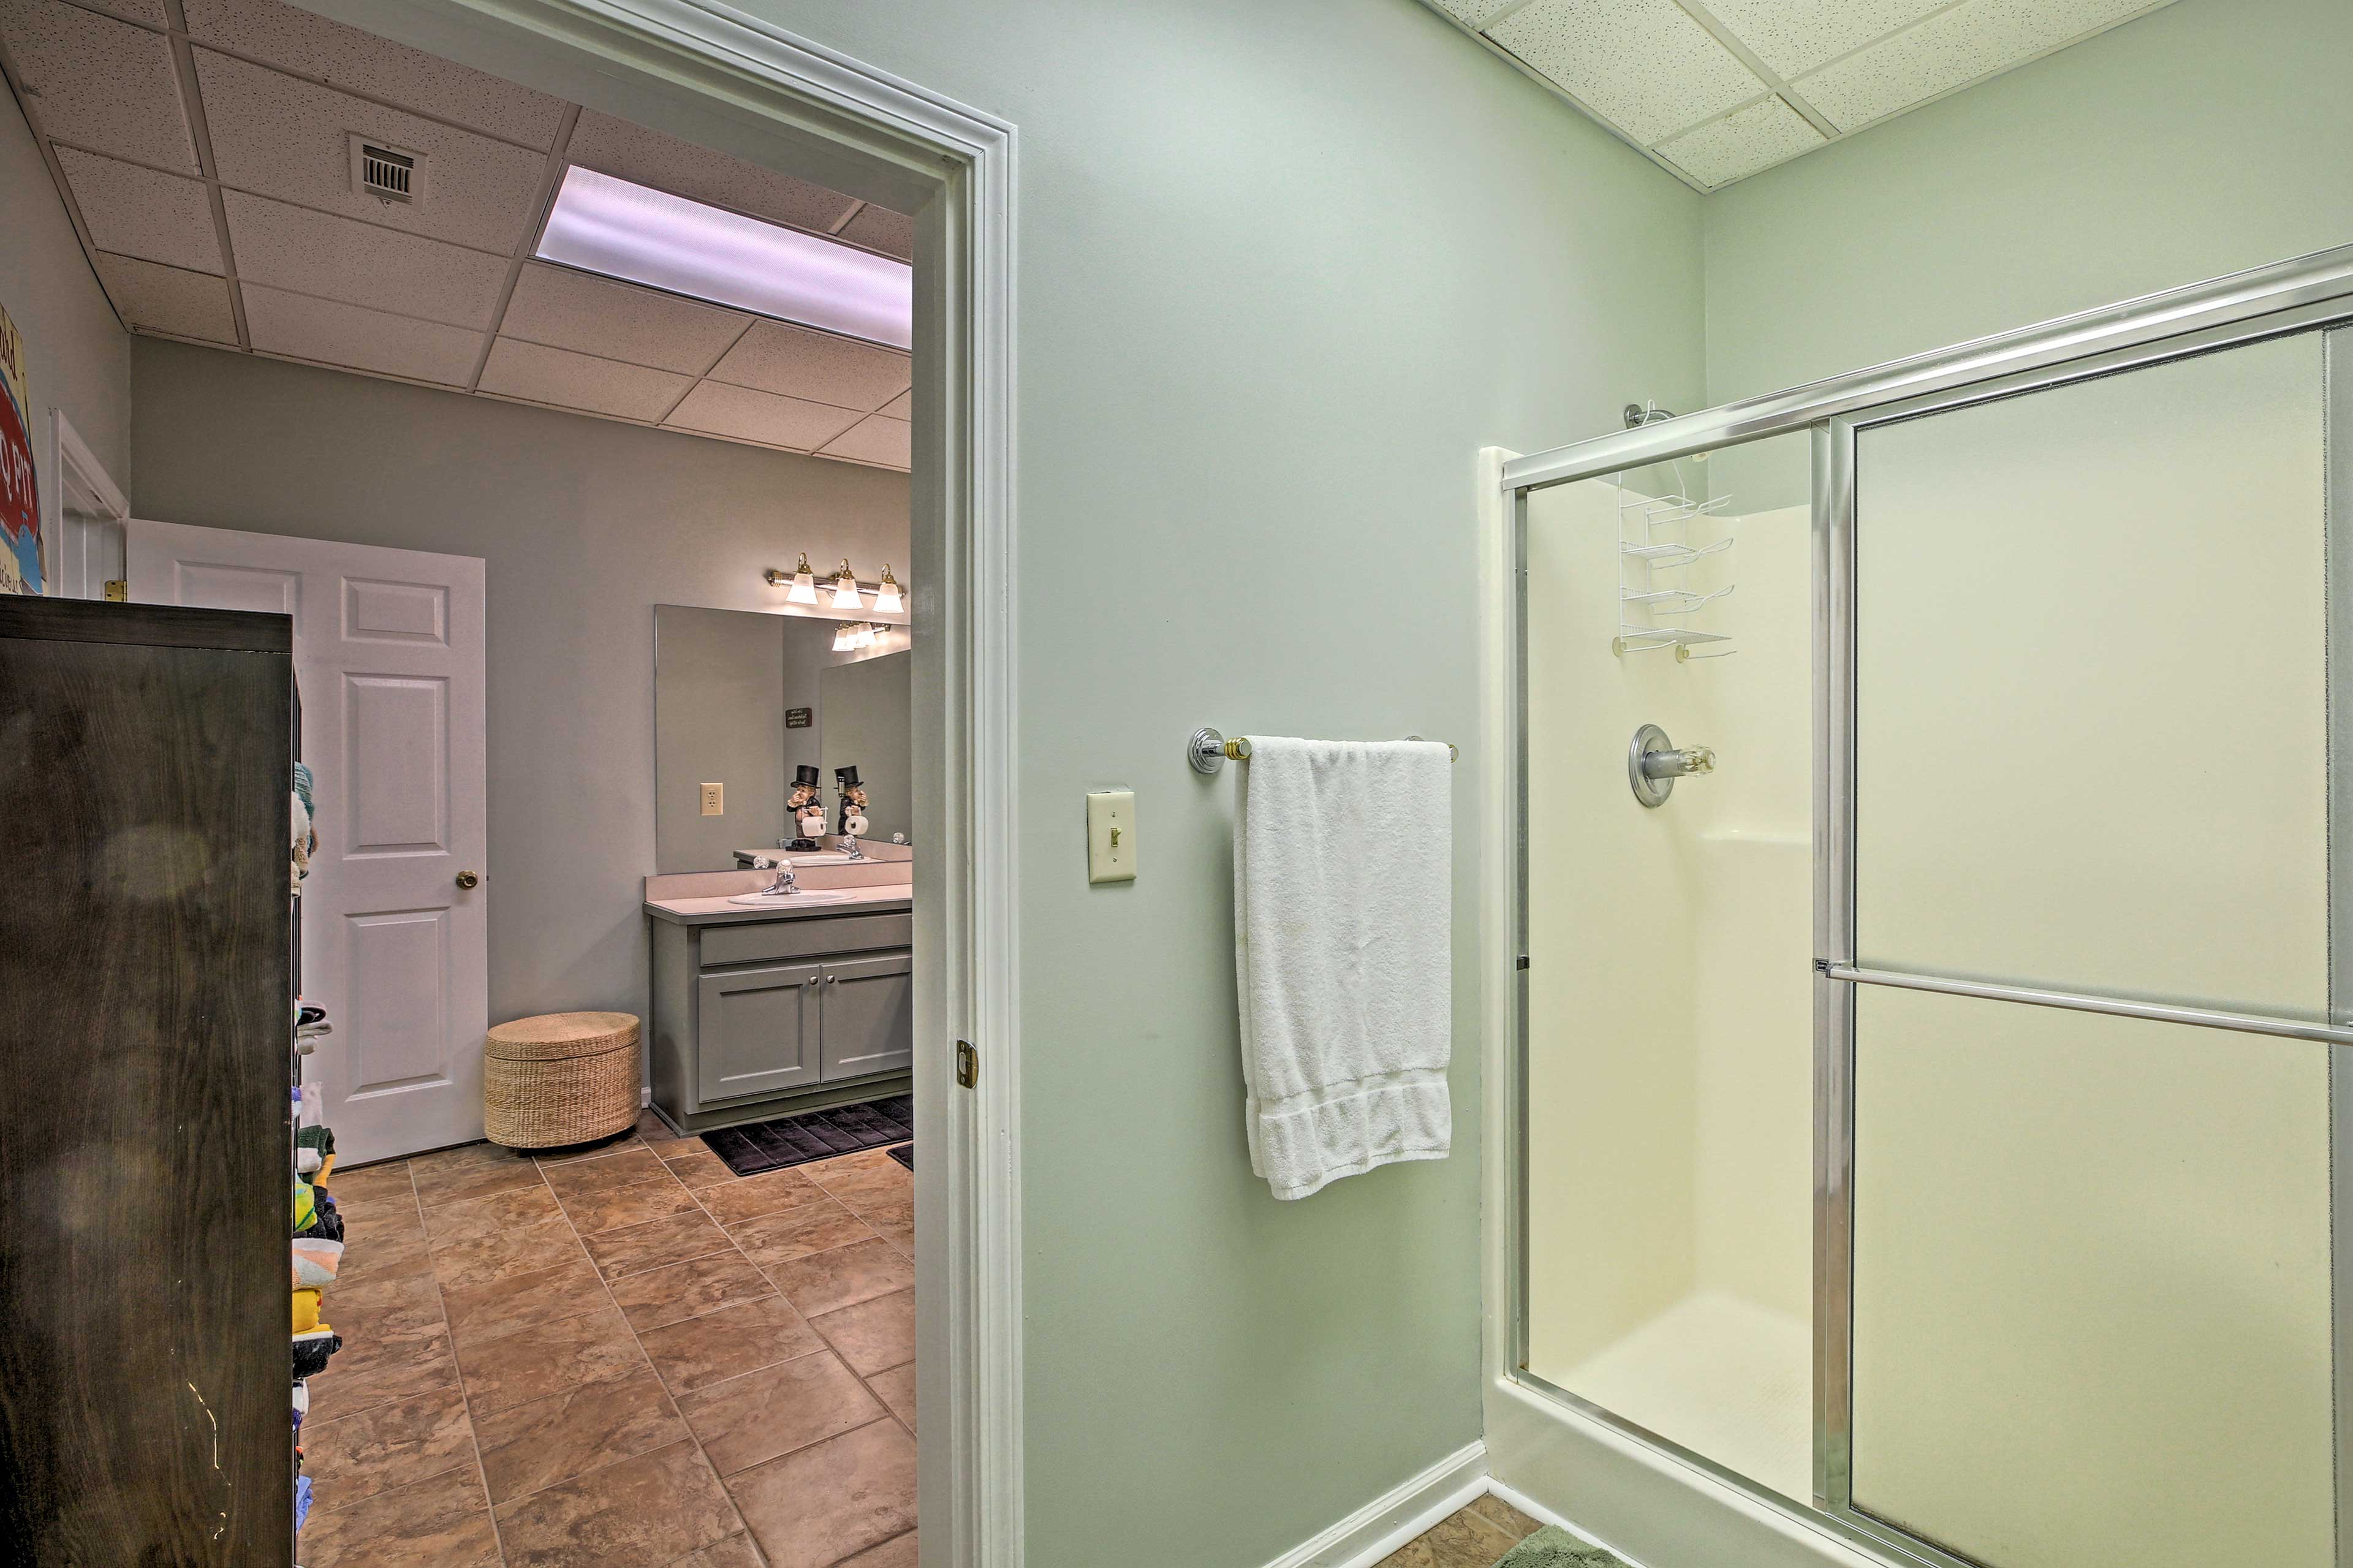 This home features a total of 4 bathrooms.